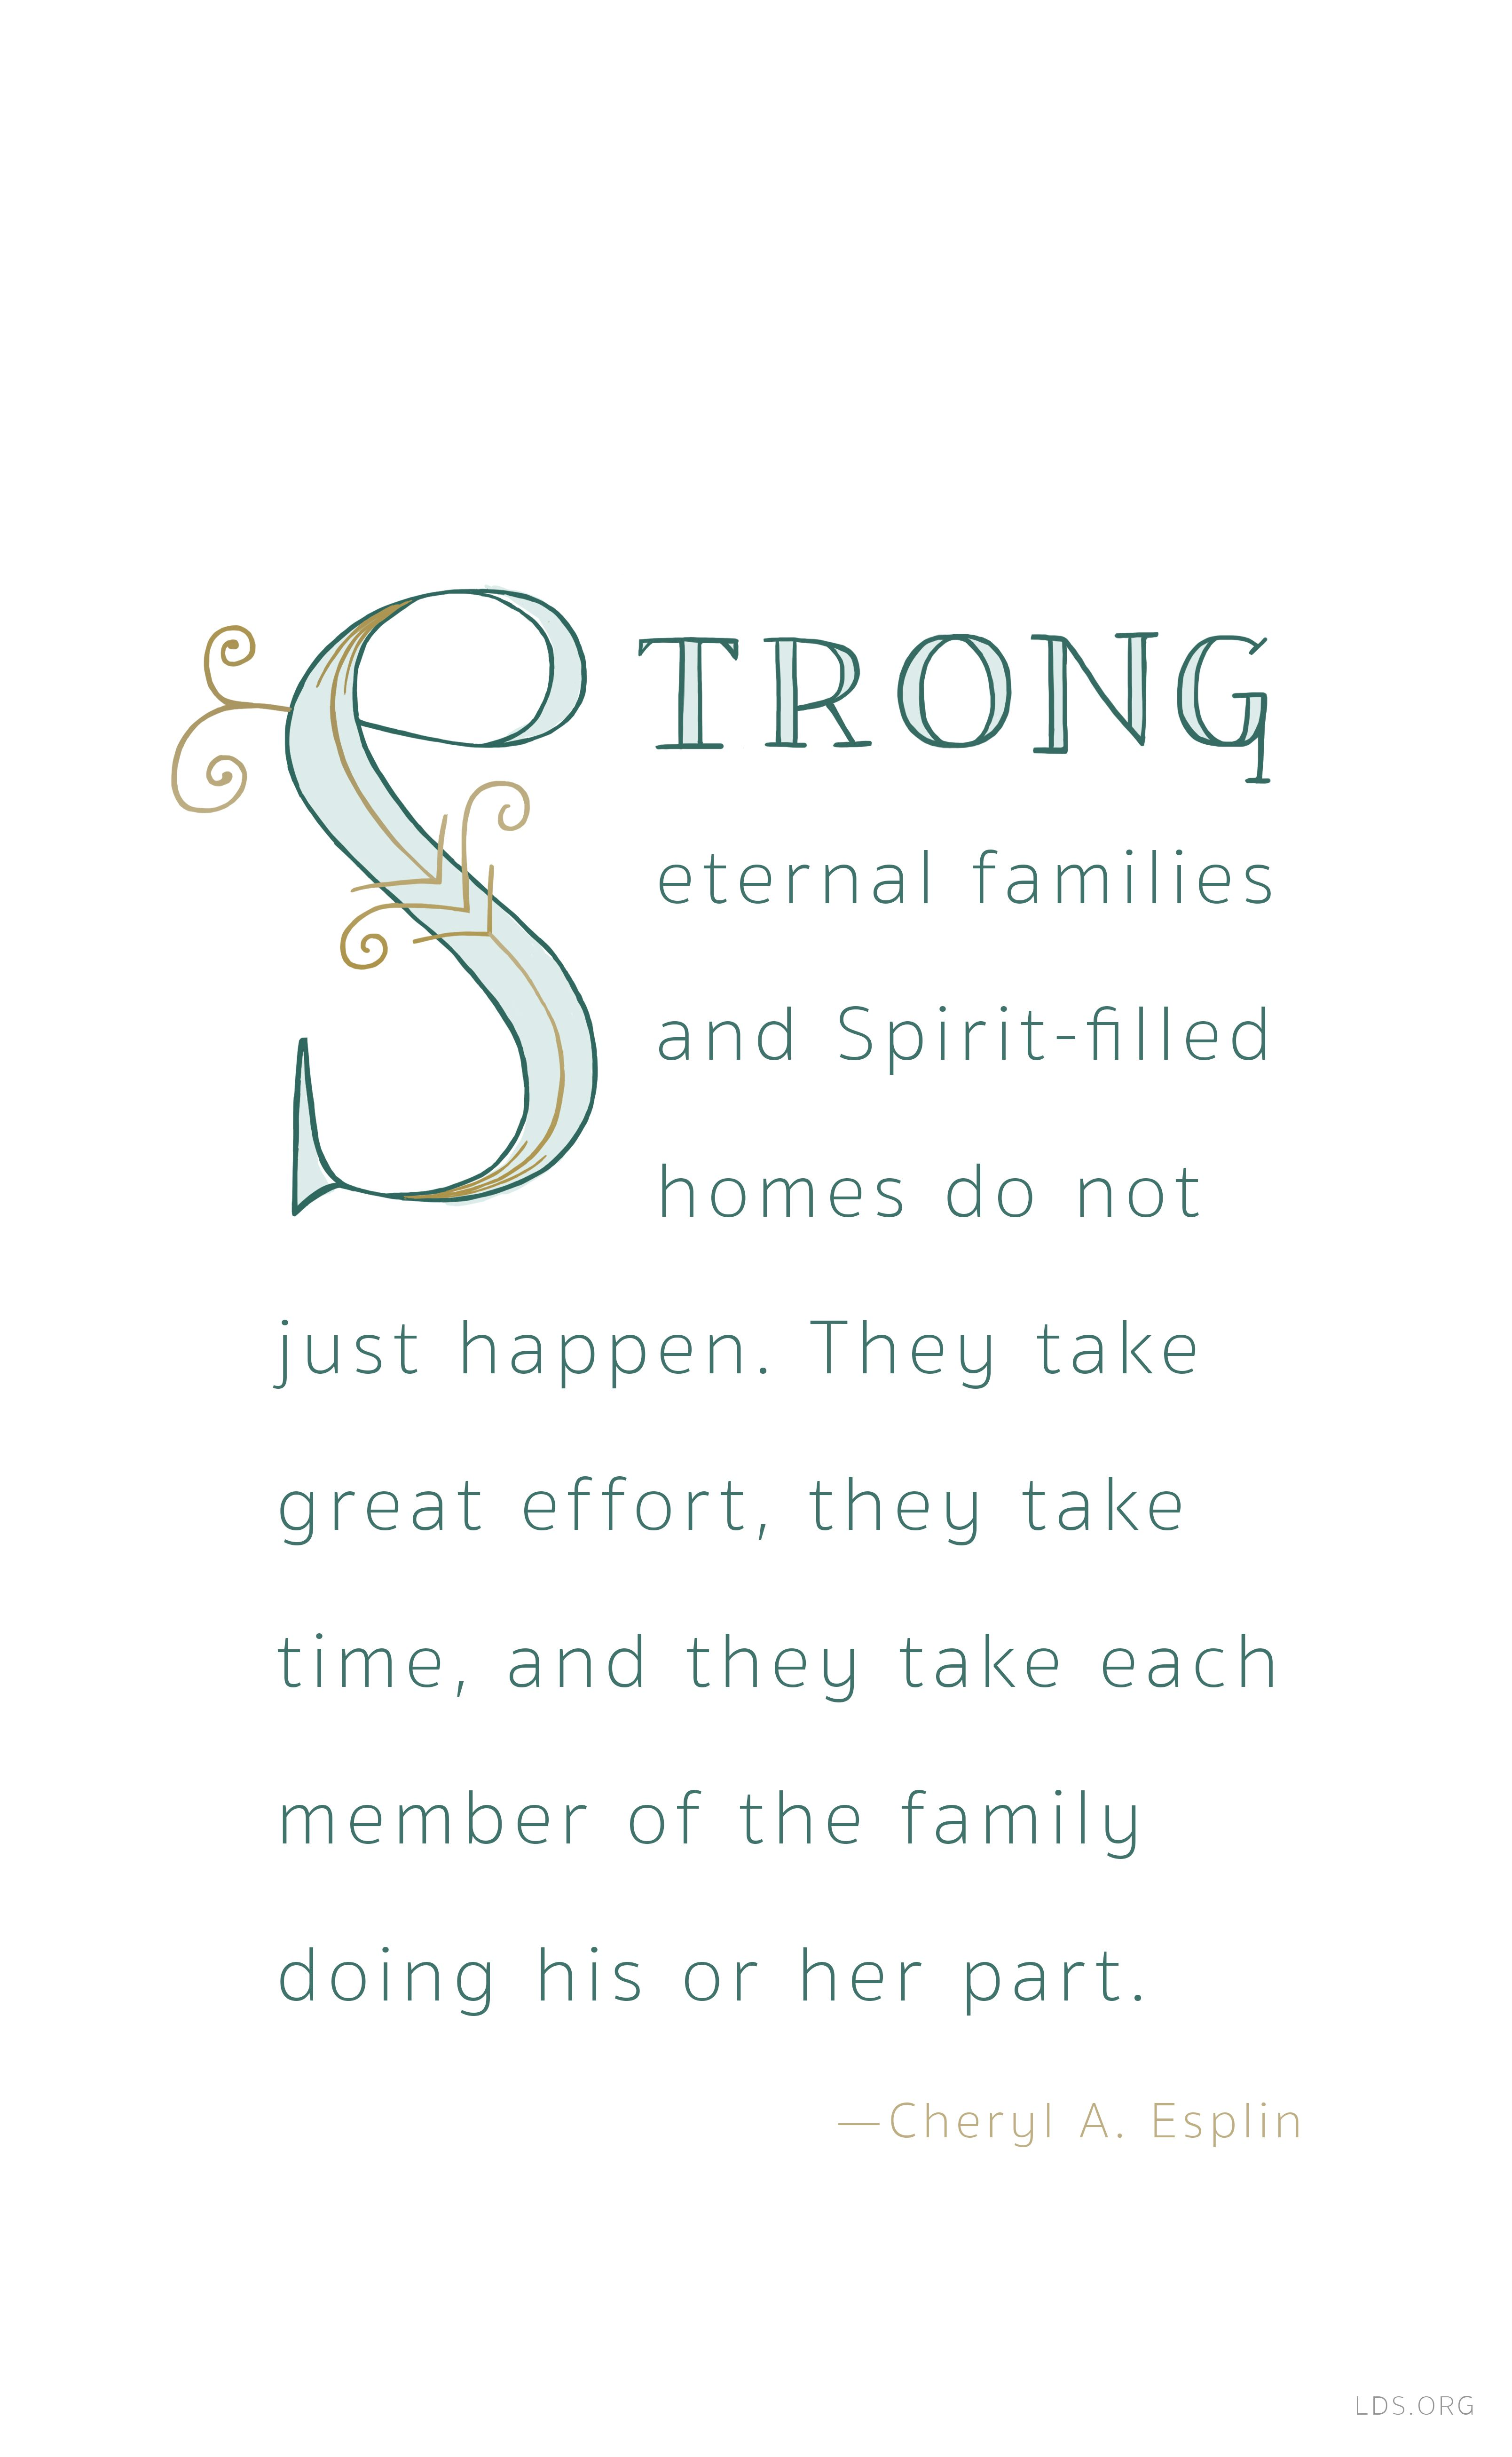 Strong eternal families and Spirit-filled homes do not just ...